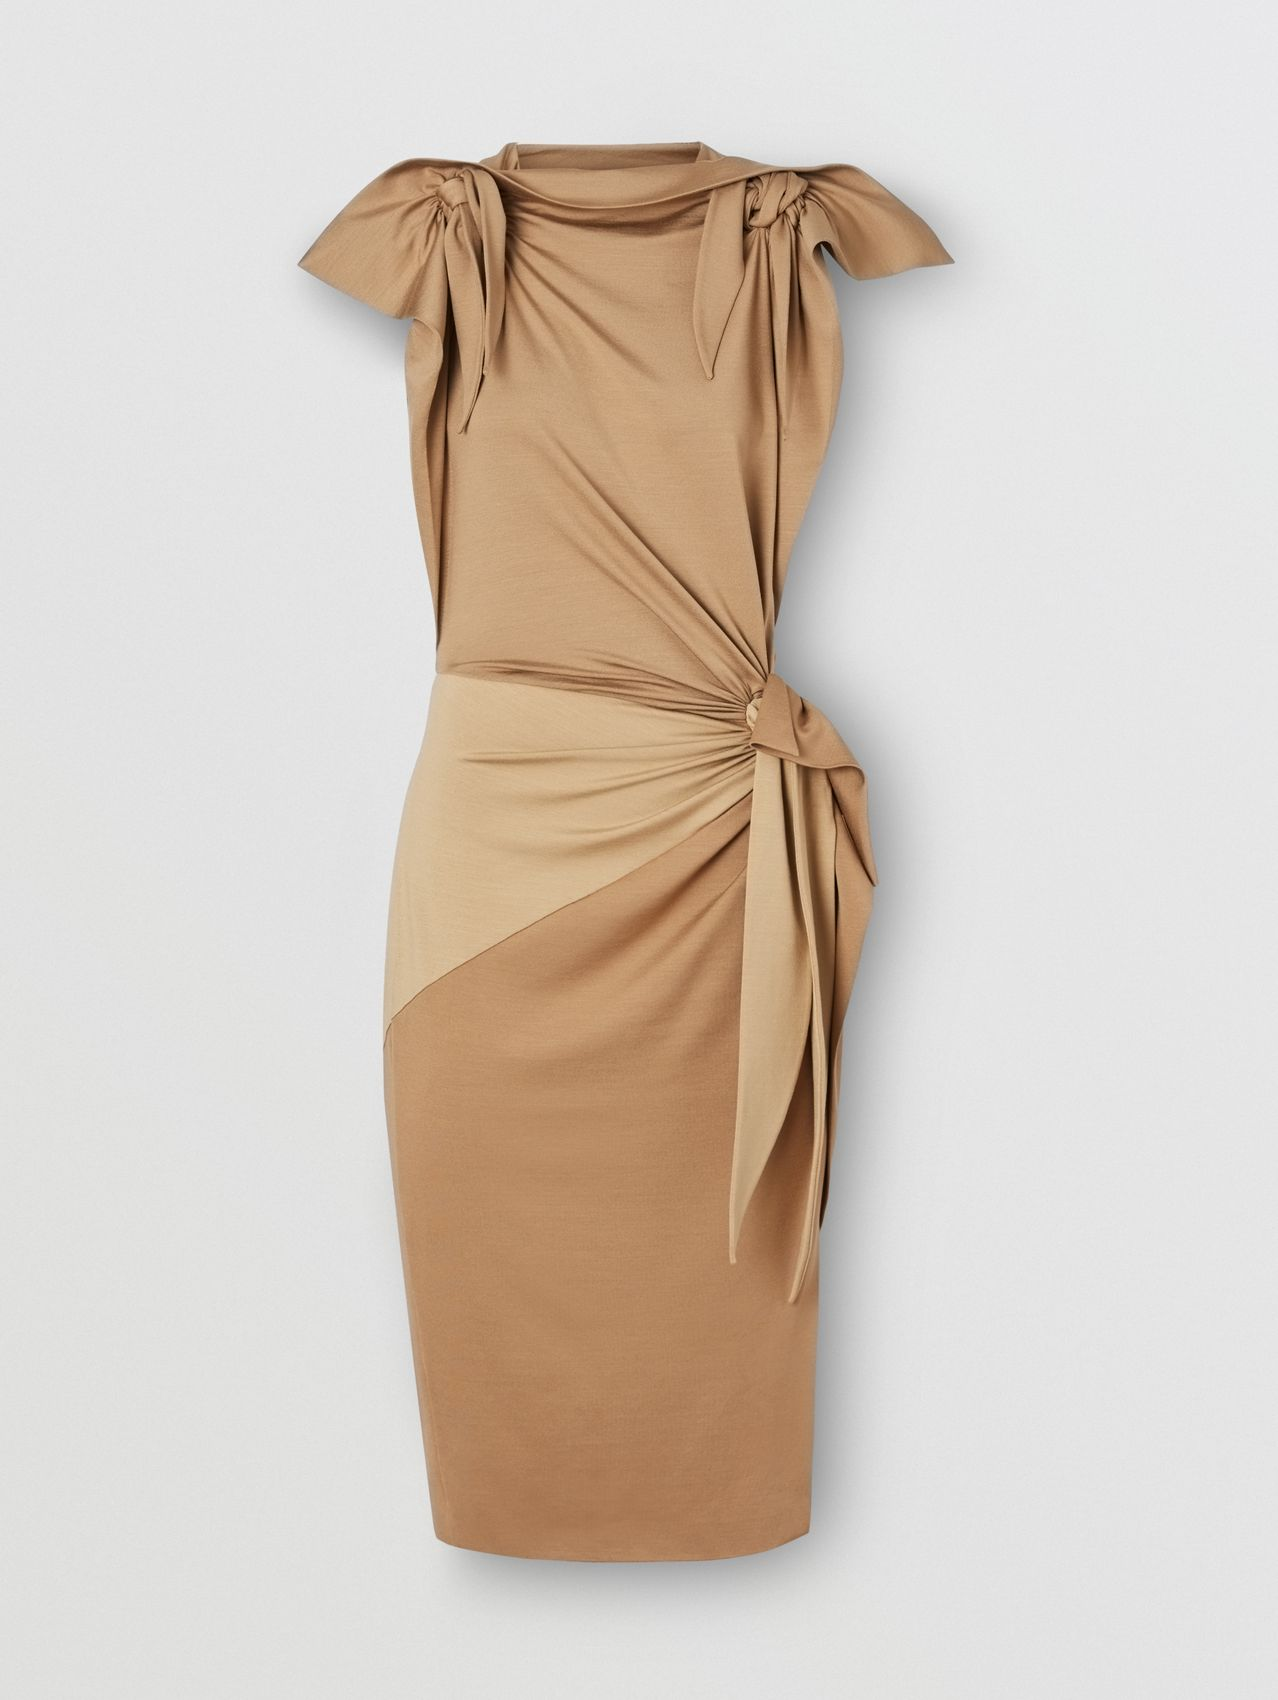 Tie Detail Tri-tone Silk Jersey Dress in Wheat